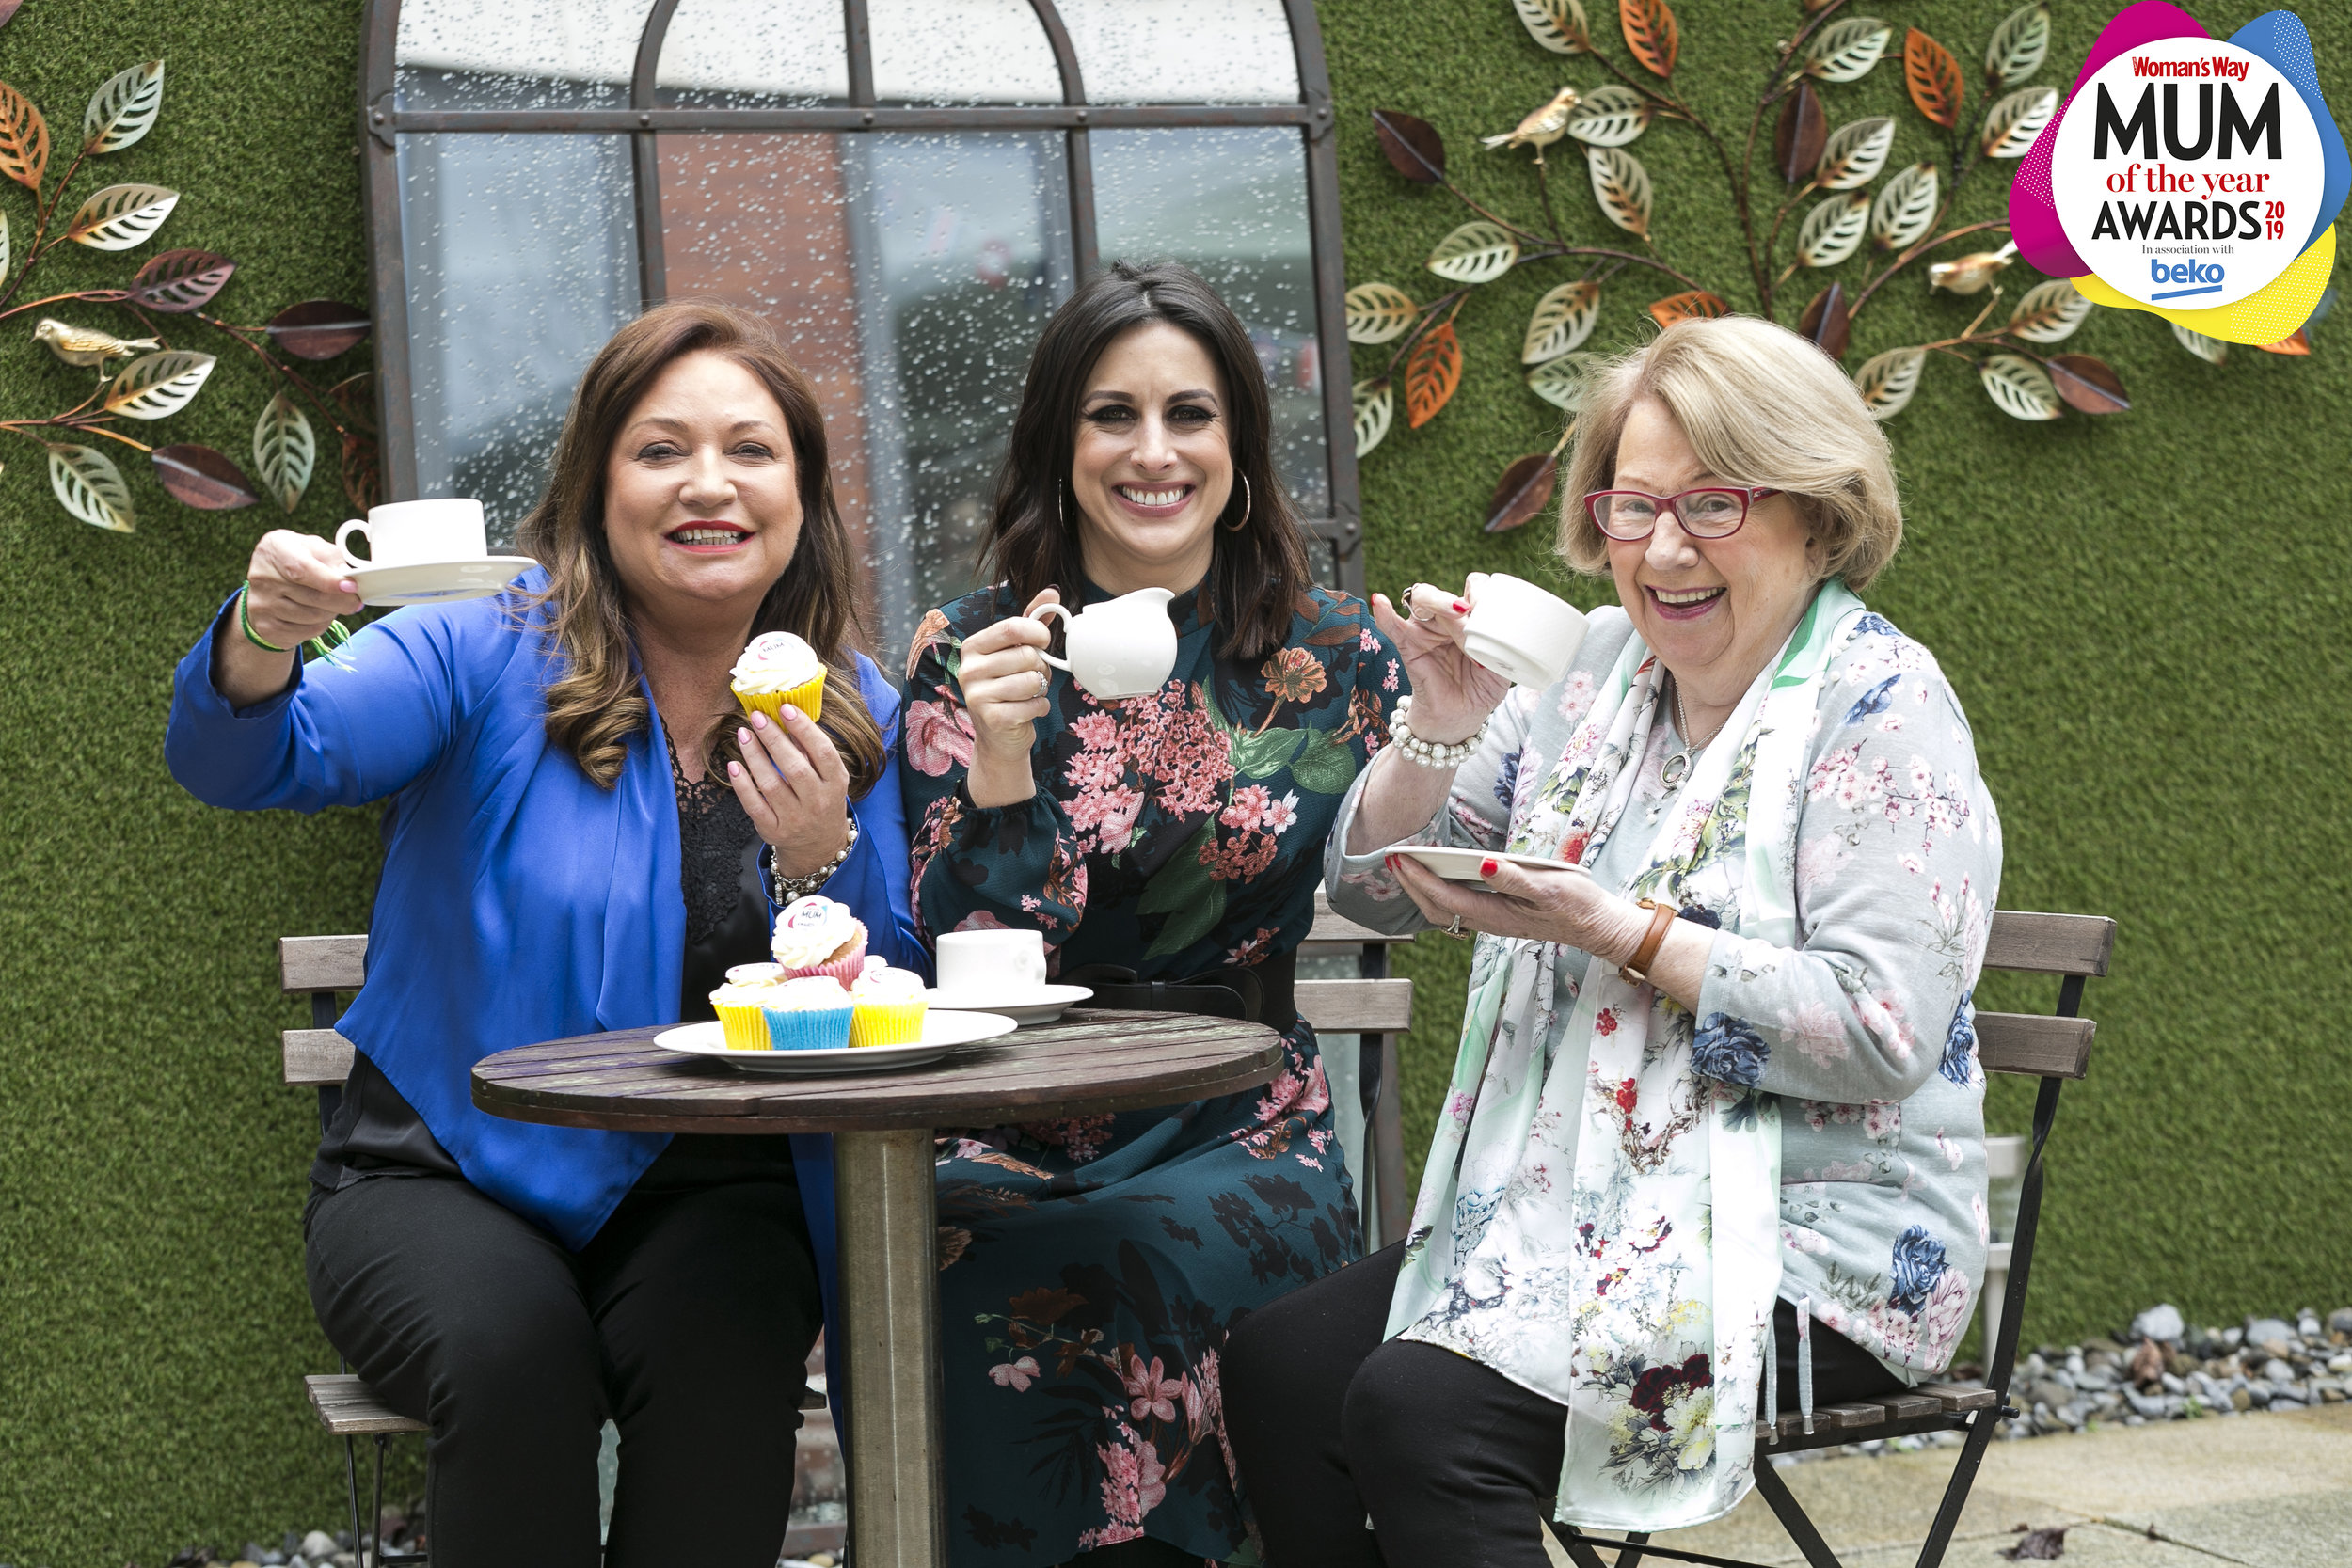 Norah Casey, Lucy Kennedy and Mags Casey at the launch for the 2019 Mum of the Year Awards